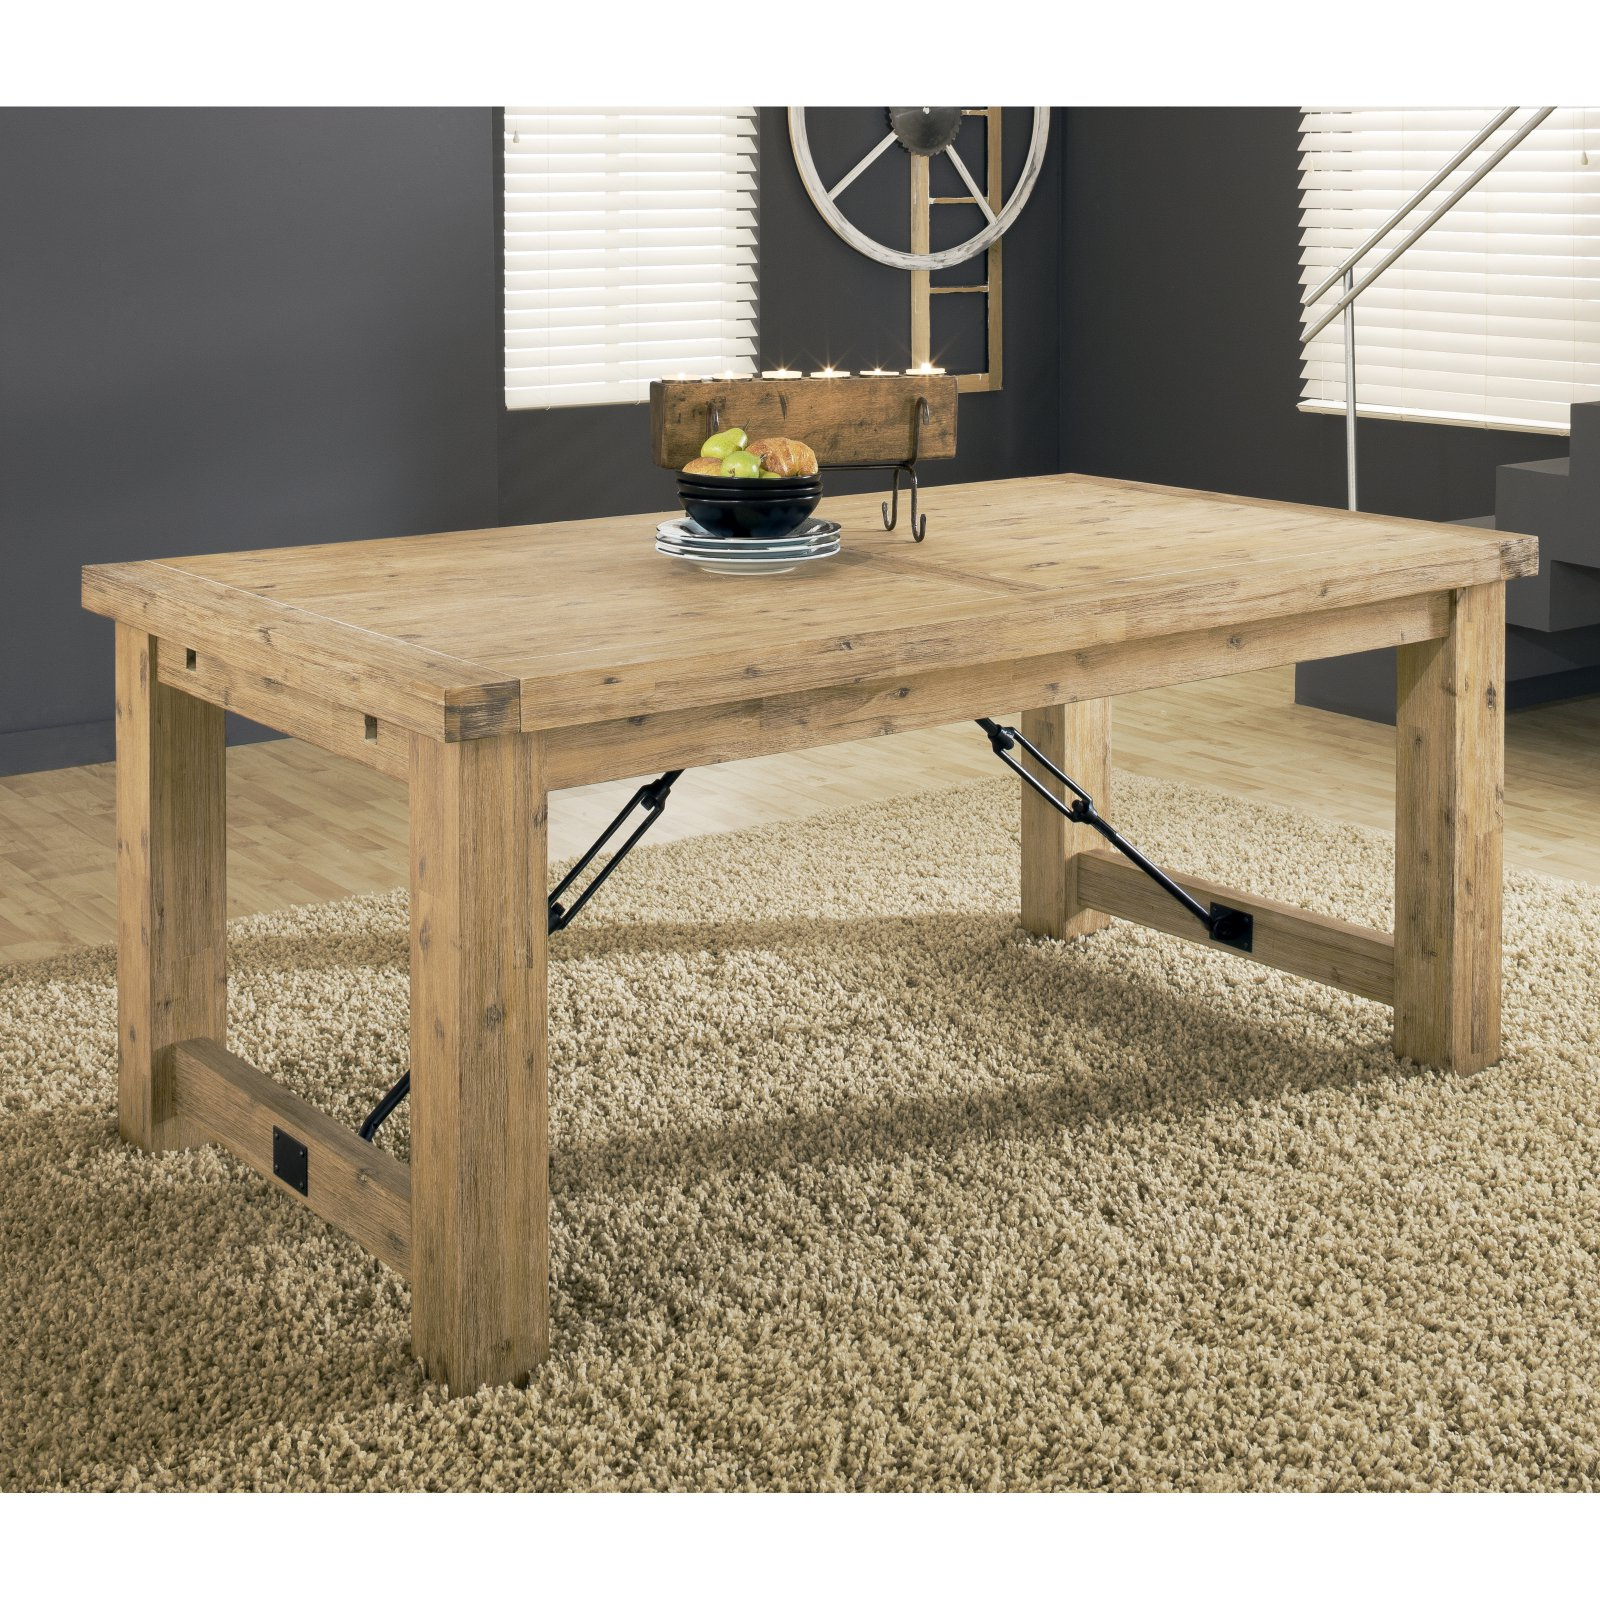 Modus Autumn Solid Wood Extension Table Cider by Modus Furniture International